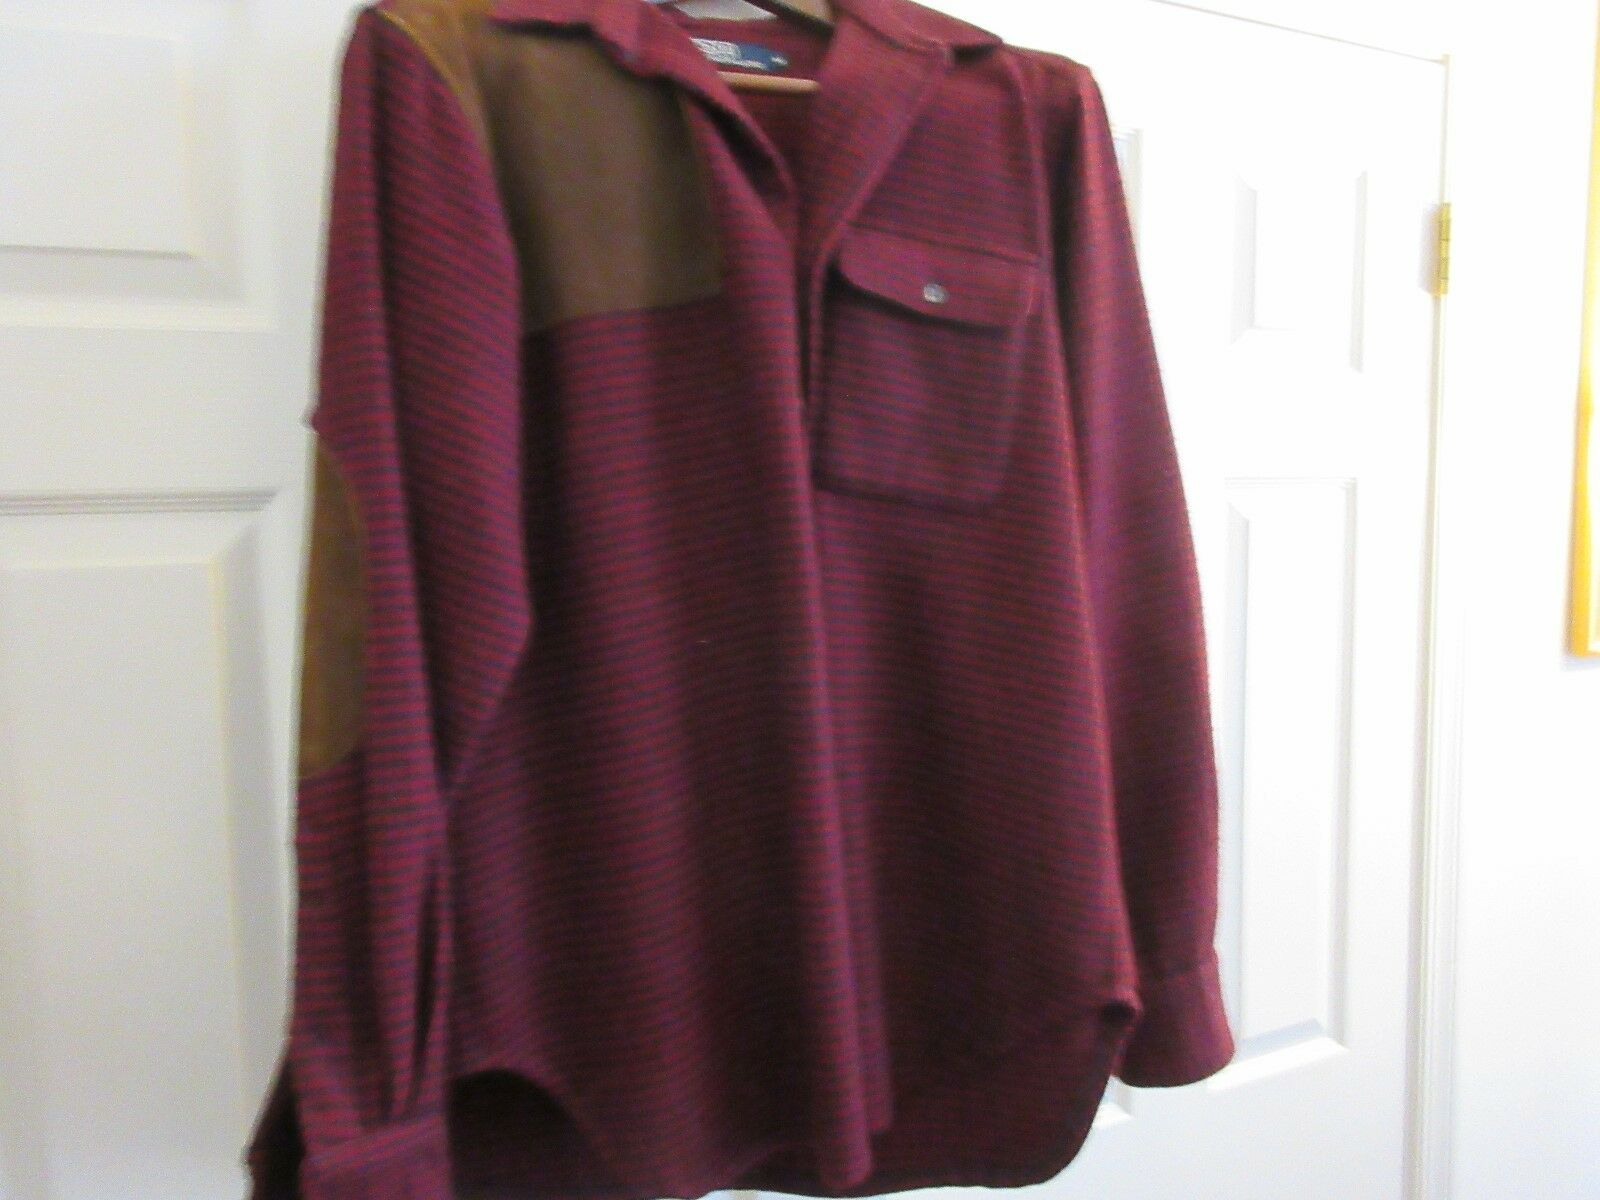 Polo by Ralph Lauren ,Men's Shirt / Sweater , Size M, W